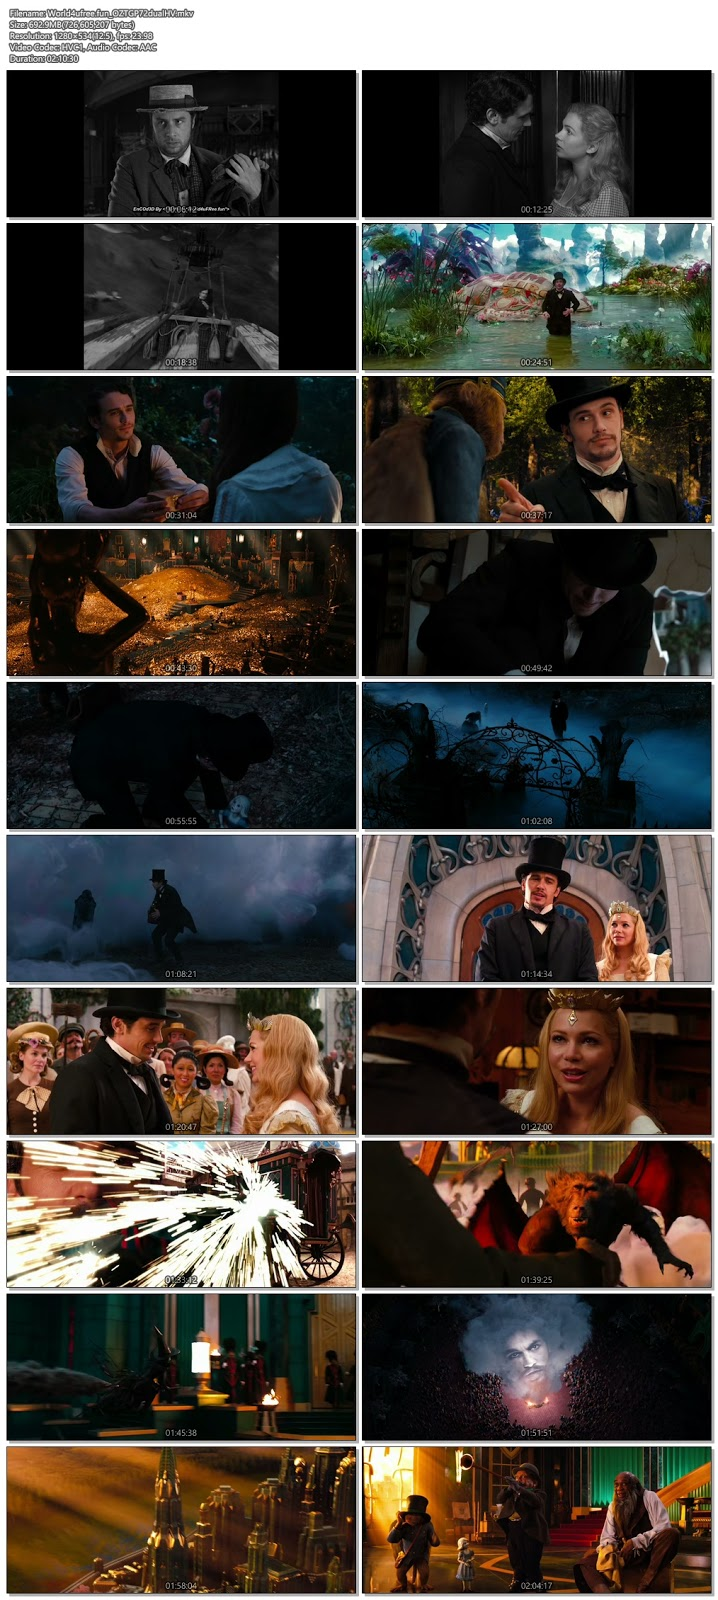 Oz the Great and Powerful 2013 Dual Audio 720p BRRip 700Mb HEVC x265pandplogistics.com, hollywood movie Arthur and the Invisibles 2006 hindi dubbed dual audio hindi english languages original audio 720p BRRip hdrip free download 700mb movies download or watch online at pandplogistics.com